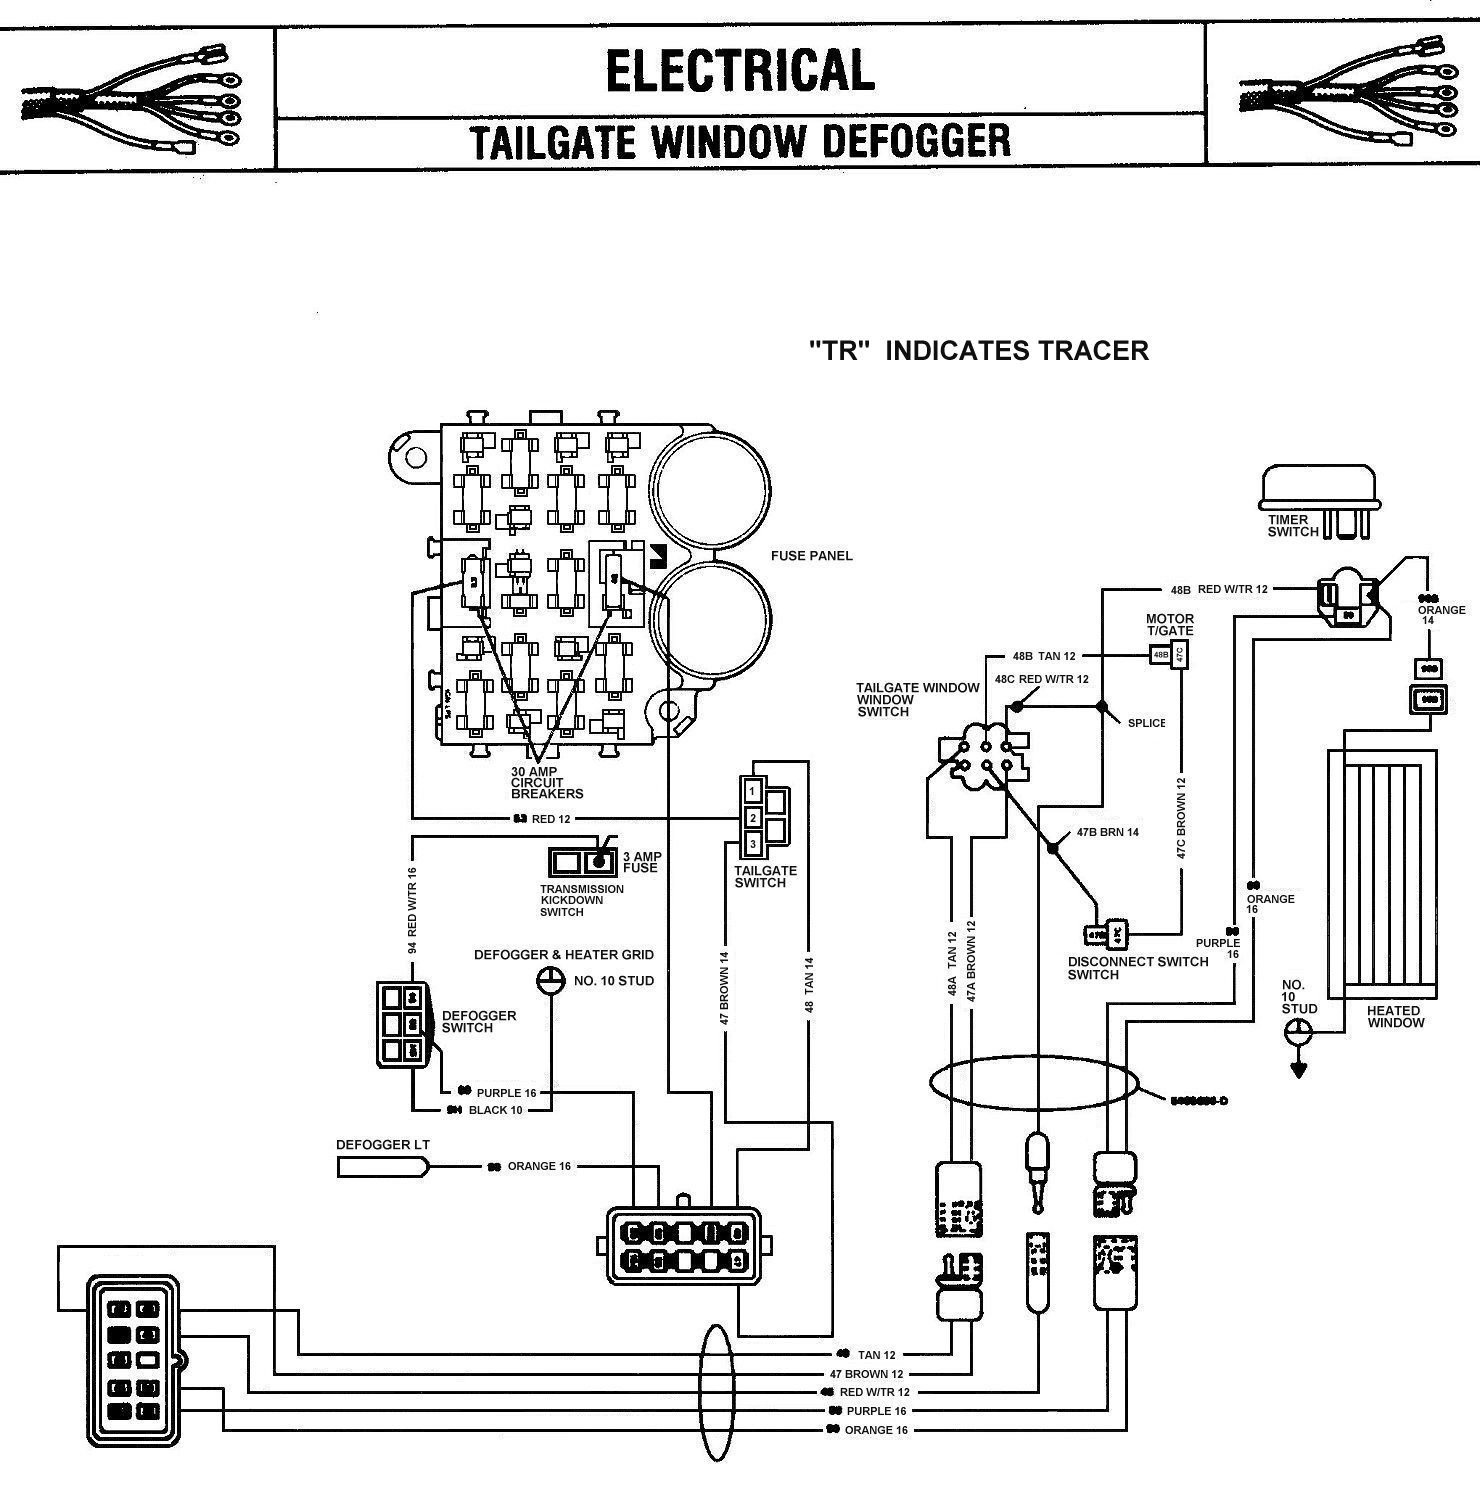 flatbed trailer wiring diagram free picture schematic tom  oljeep  collins fsj wiring page  tom  oljeep  collins fsj wiring page